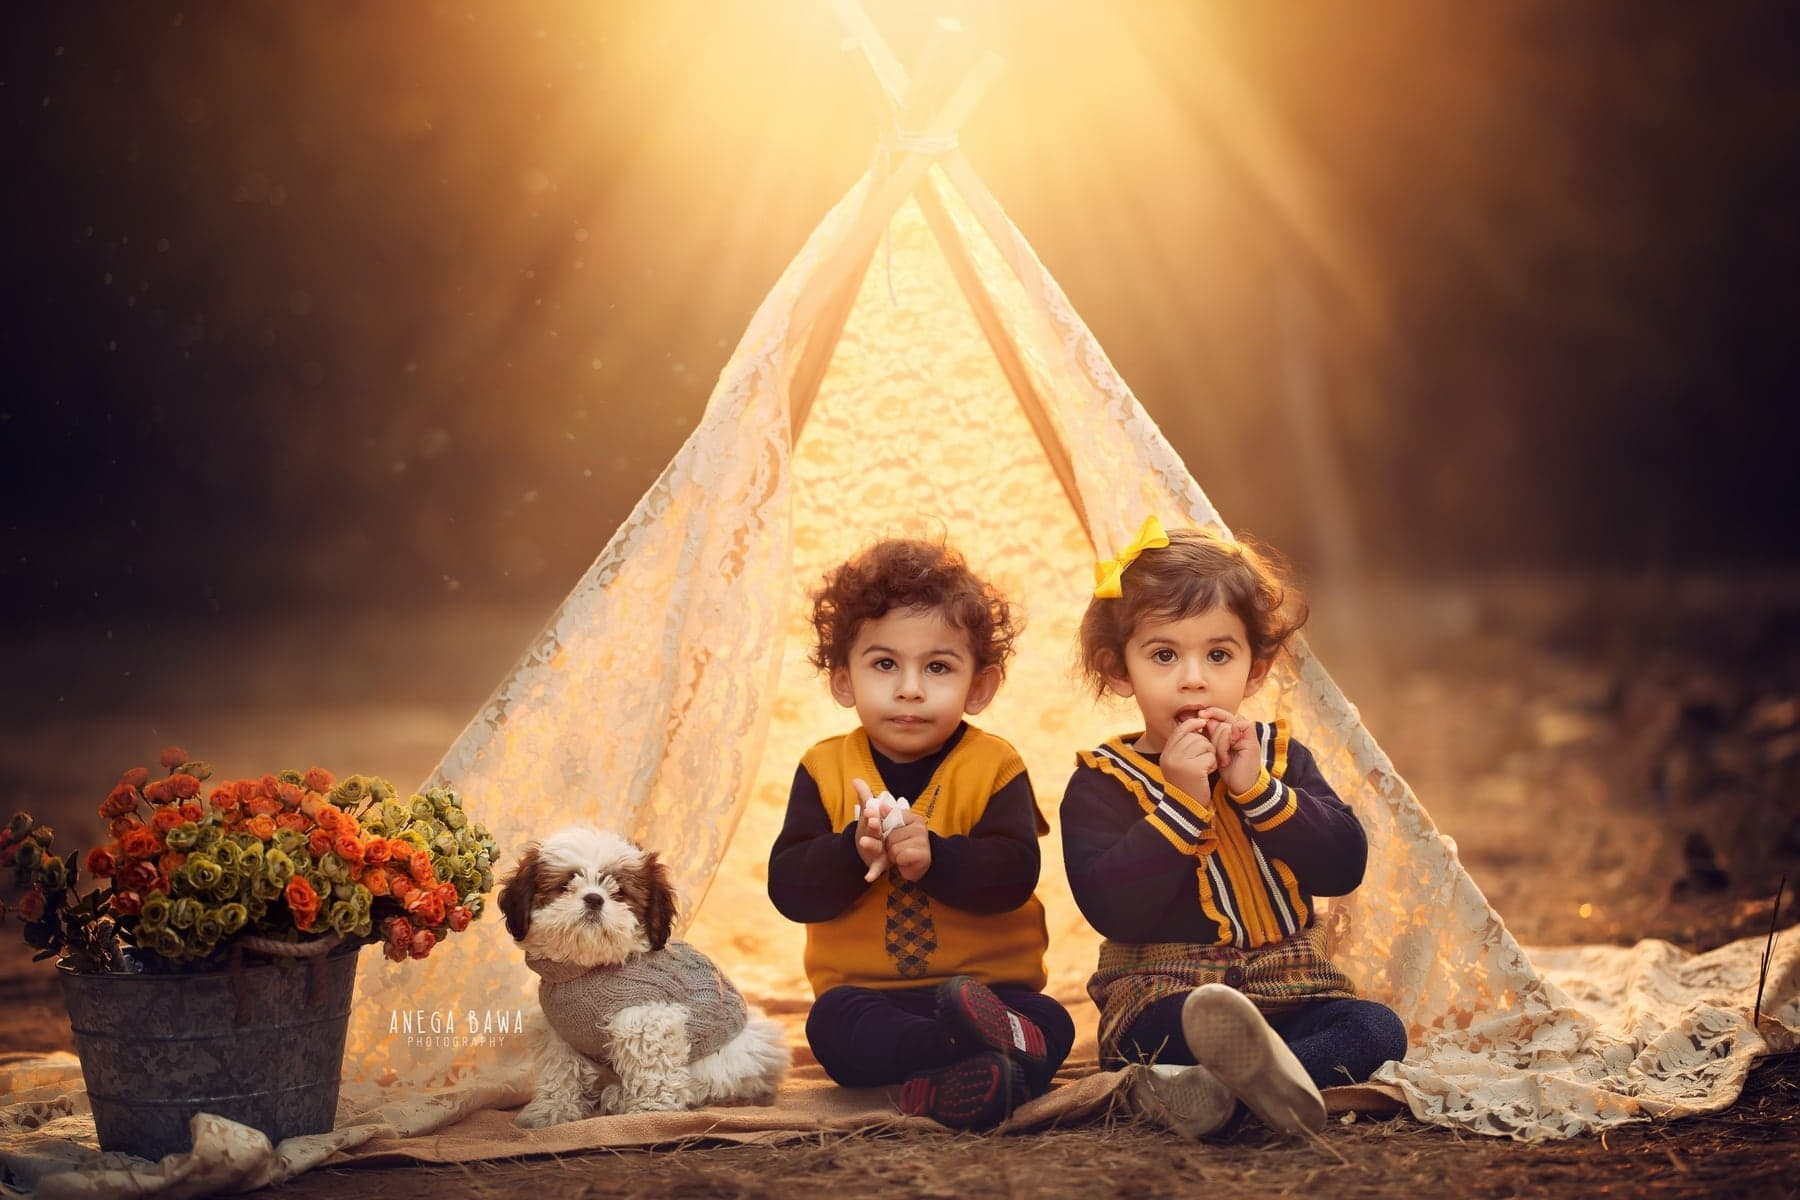 32405-natural-background-brown-tent-pet-1-2-3-years-toddler-twins-outdoor-photo-shoot-delhi-anega-bawa-photography-baby-gurgaon